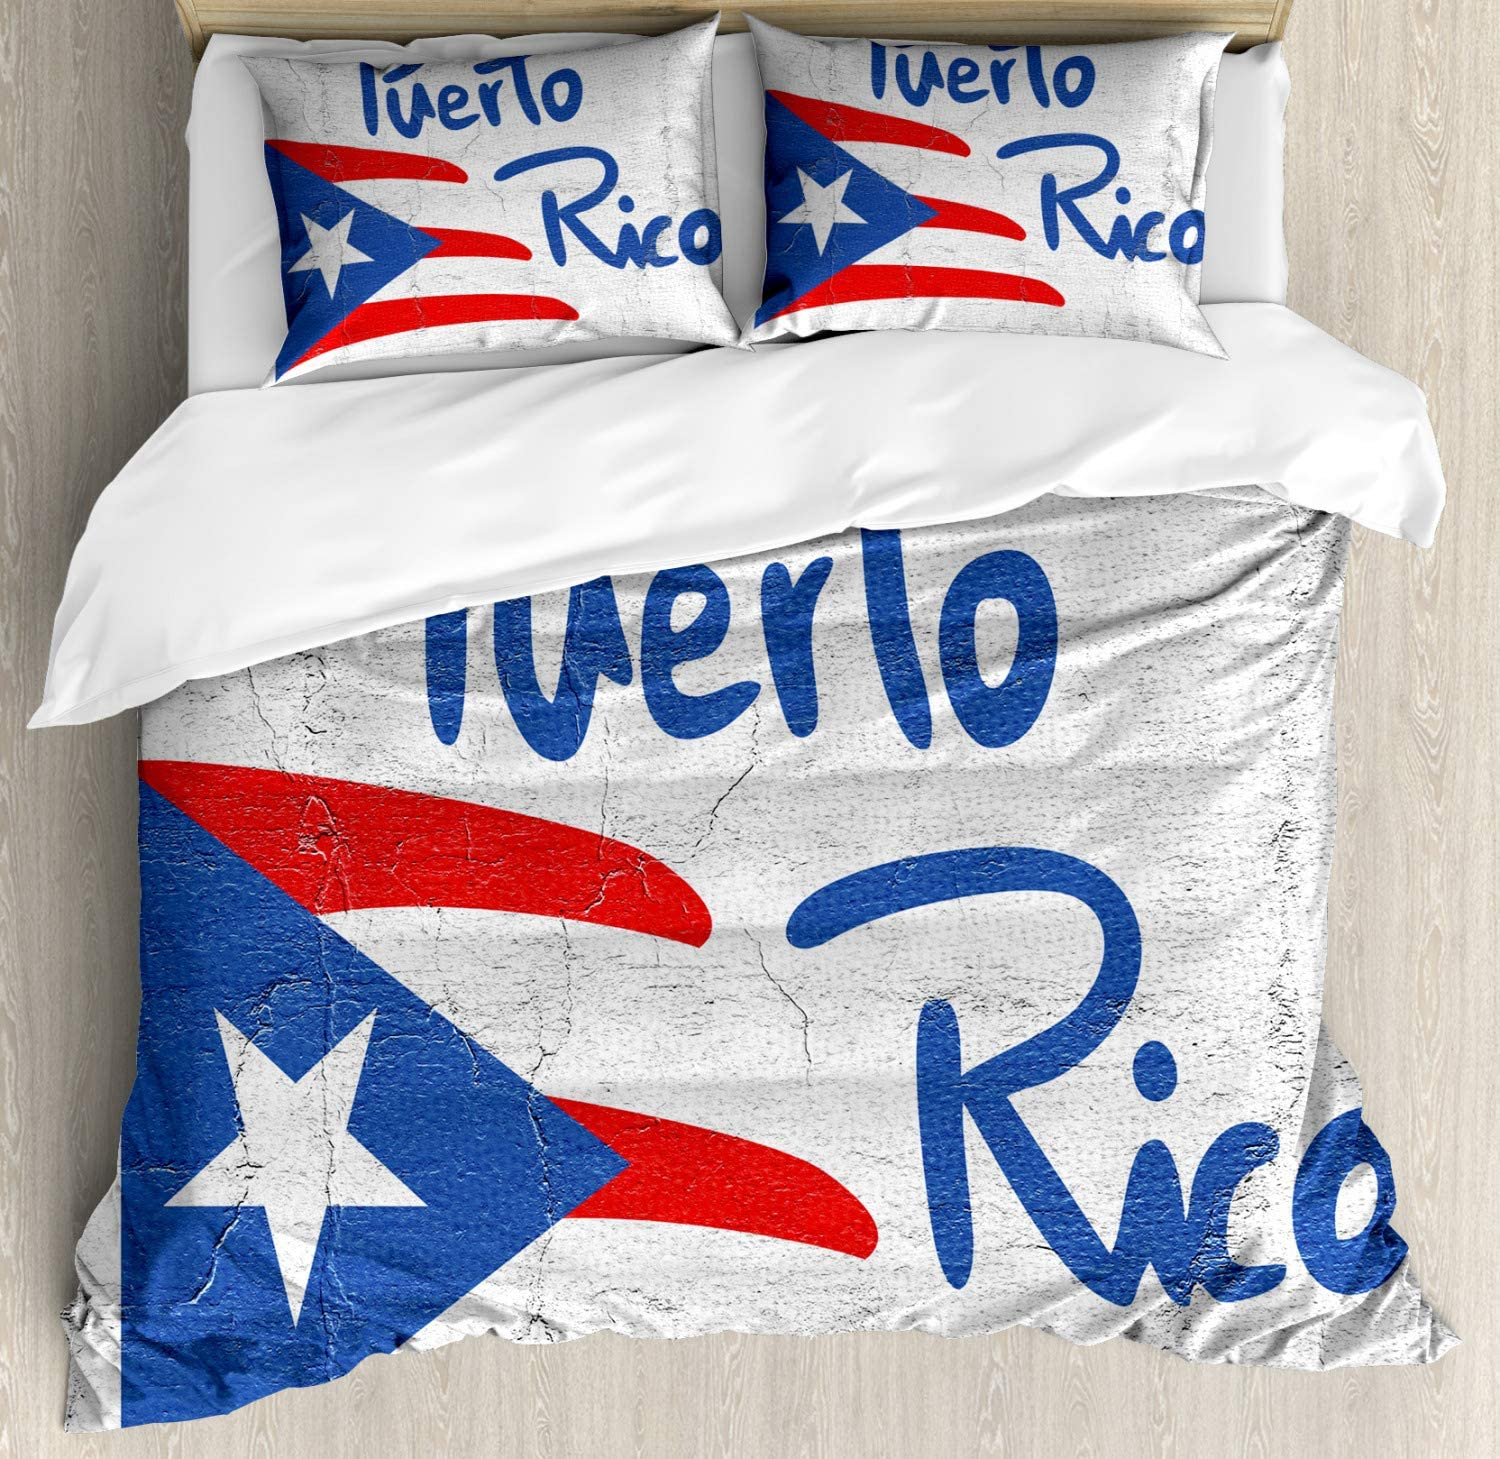 Lunarable Puerto Rico Duvet Cover Set, Hand Drawn Flag and Lettering with Weathered Background, Decorative 3 Piece Bedding Set with 2 Pillow Shams, King Size, Cobalt Blue